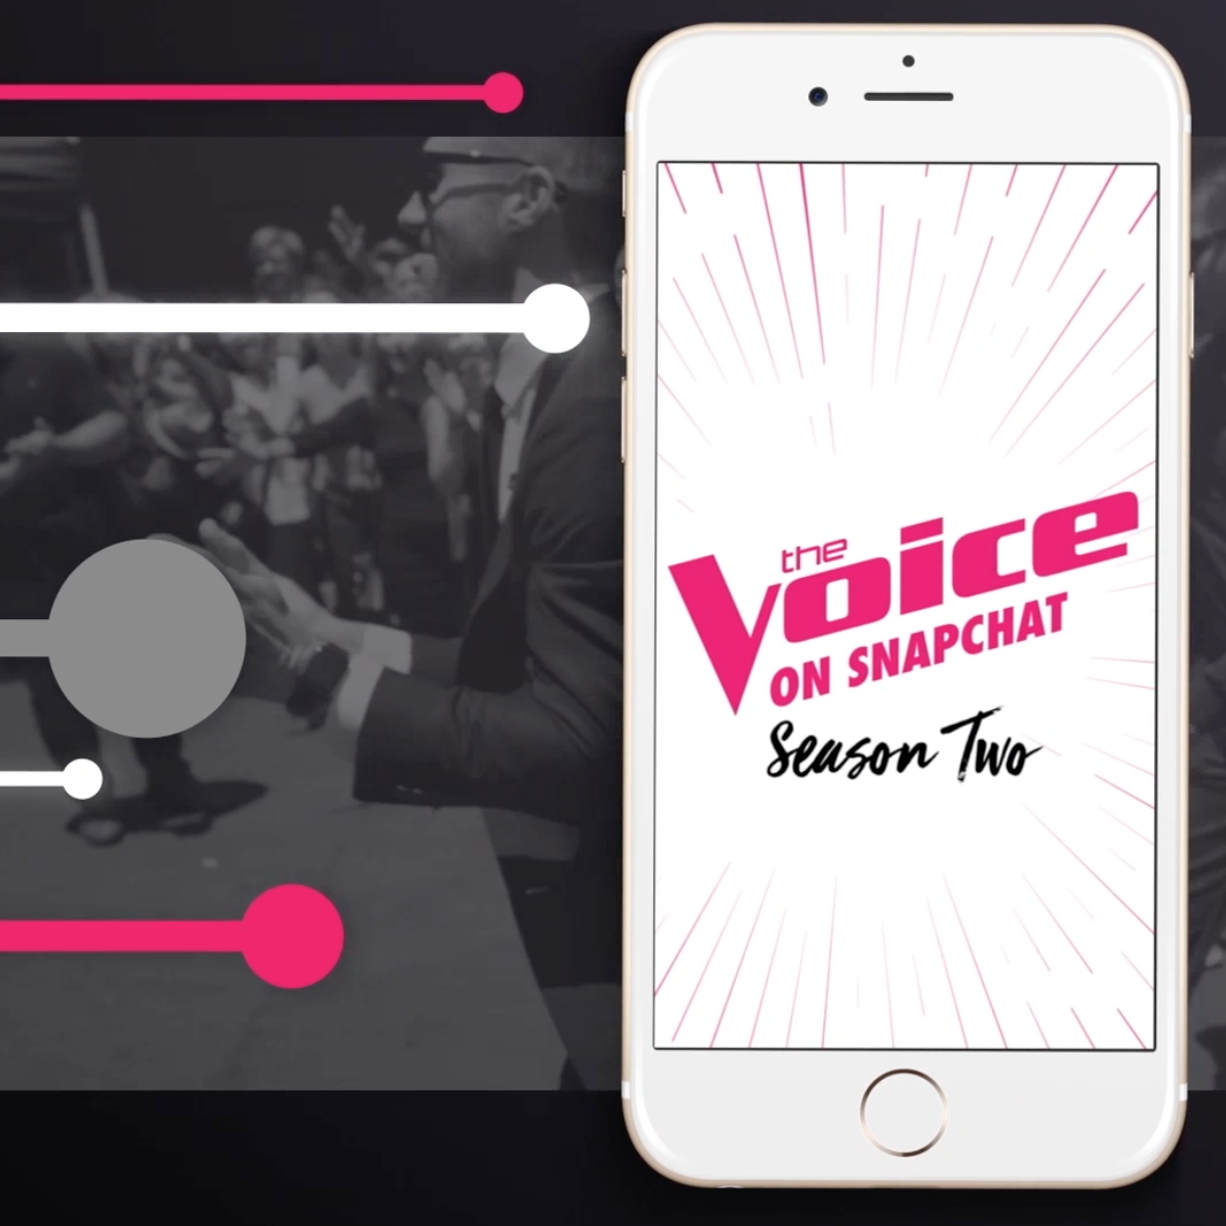 Thumbnail for The Voice on Snapchat